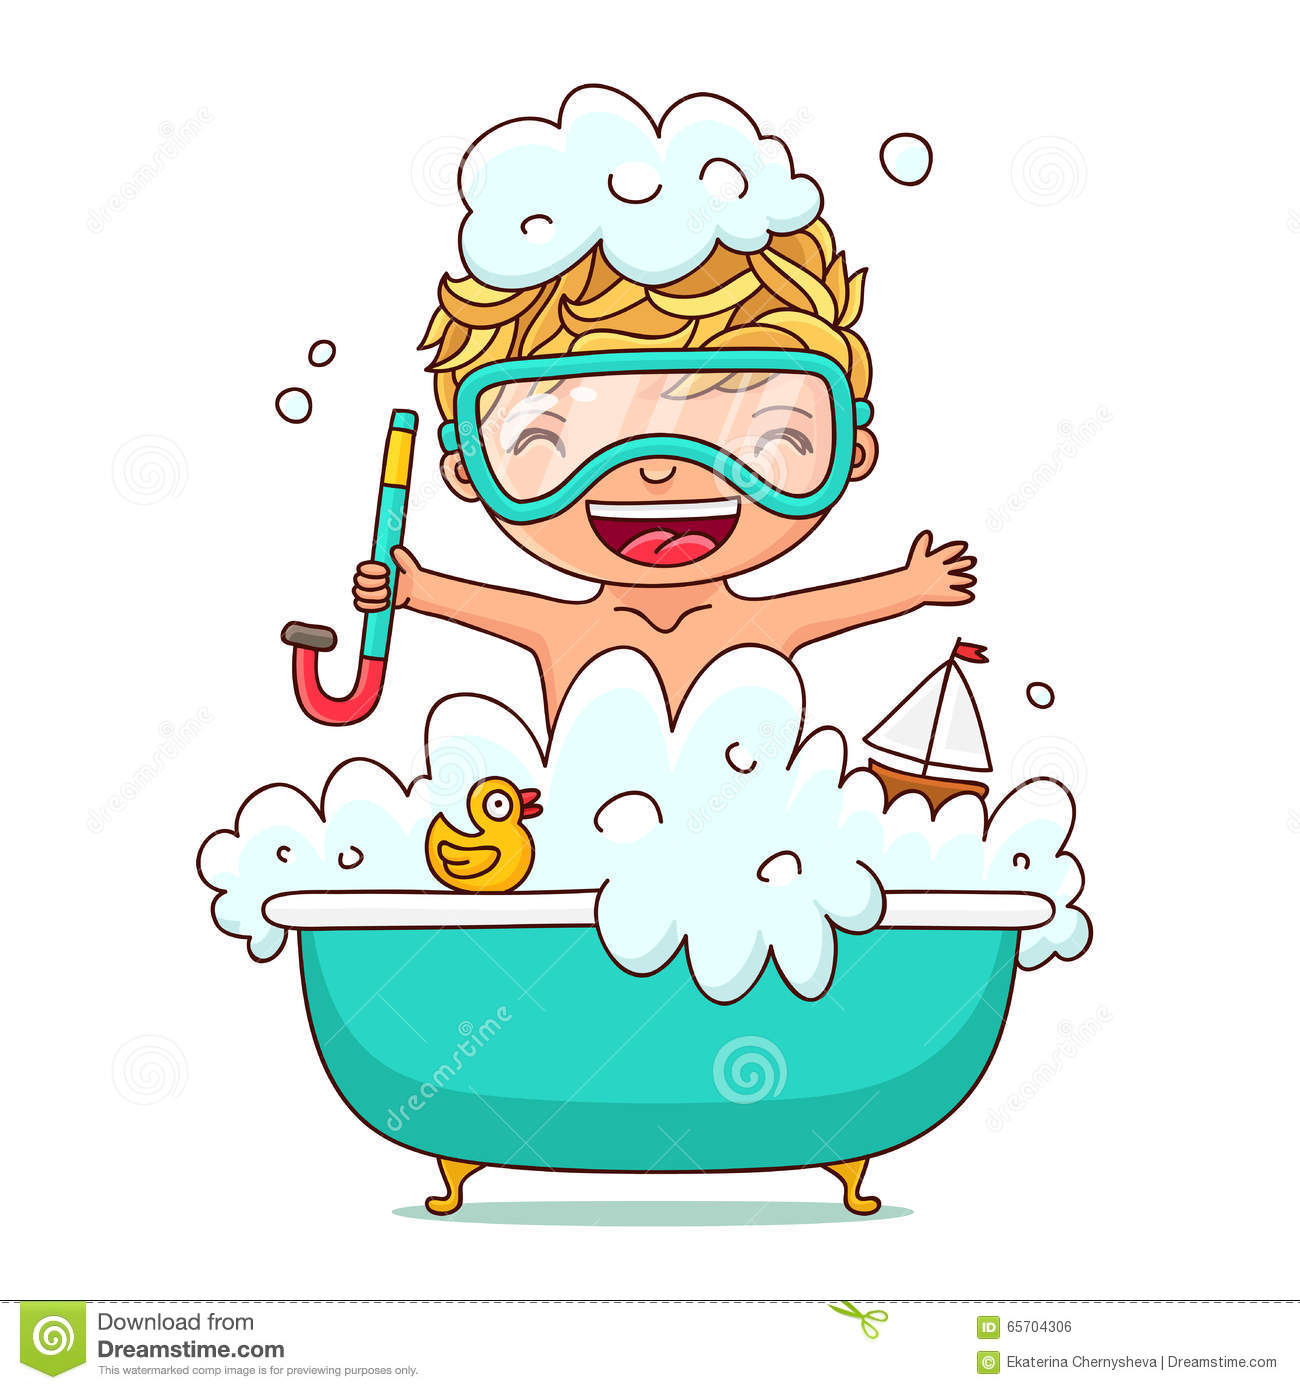 L 39 enfant s 39 assied dans un bain de mousse illustration de vecteur image 65704306 for Photo dans un bain